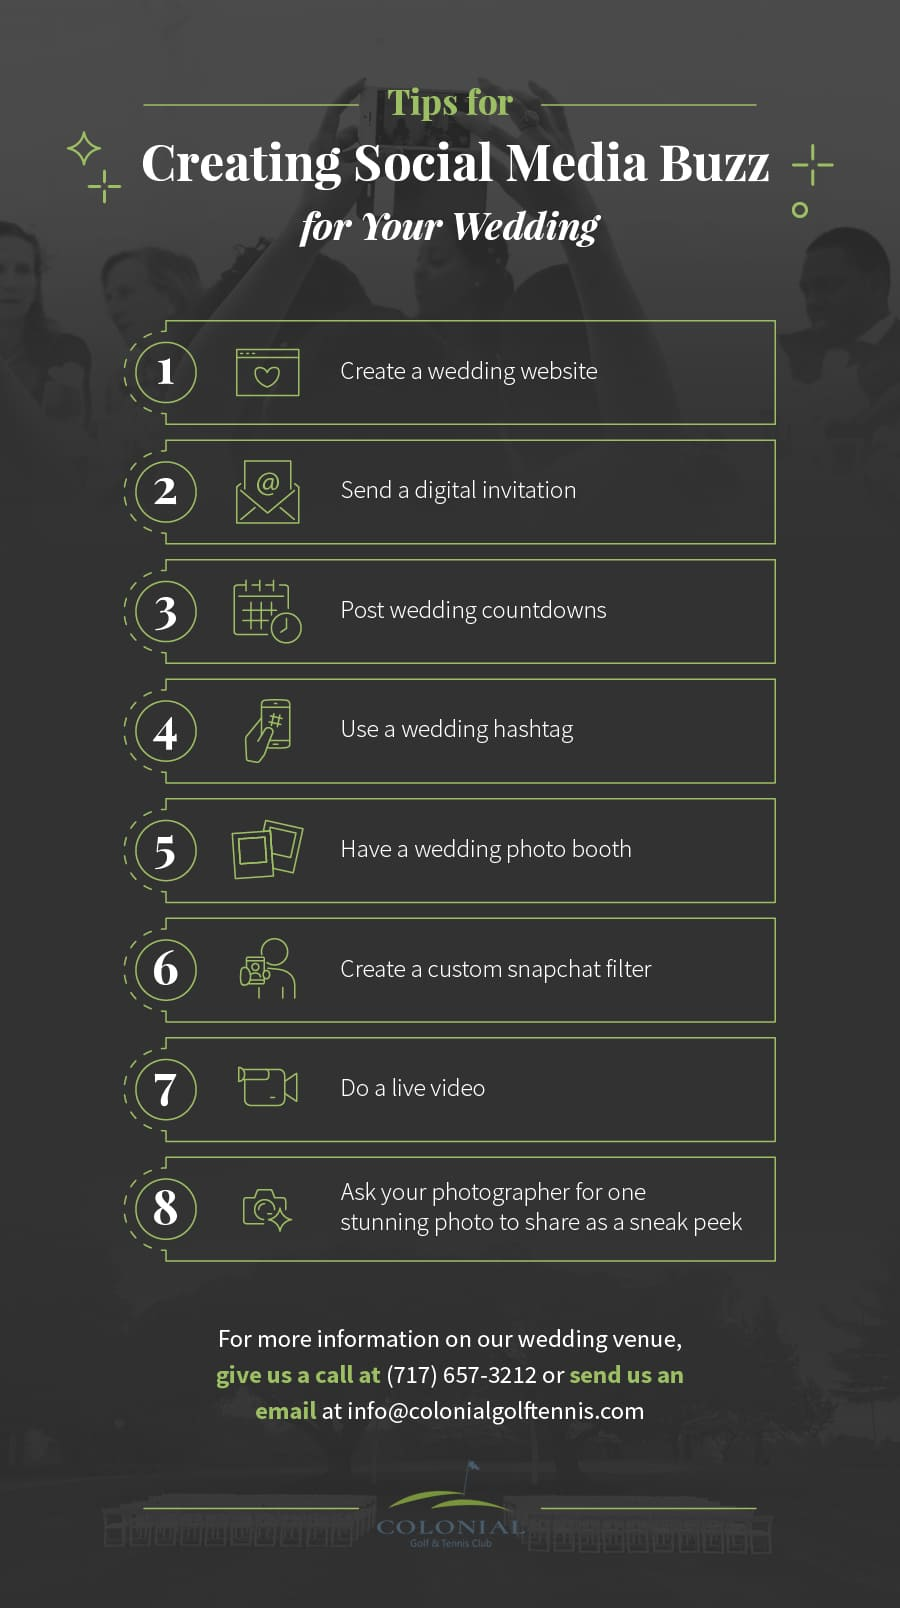 MG Tips for Creating Social Media Buzz for Your Wedding 1 - 8 Tips for Creating Social Media Buzz for Your Wedding